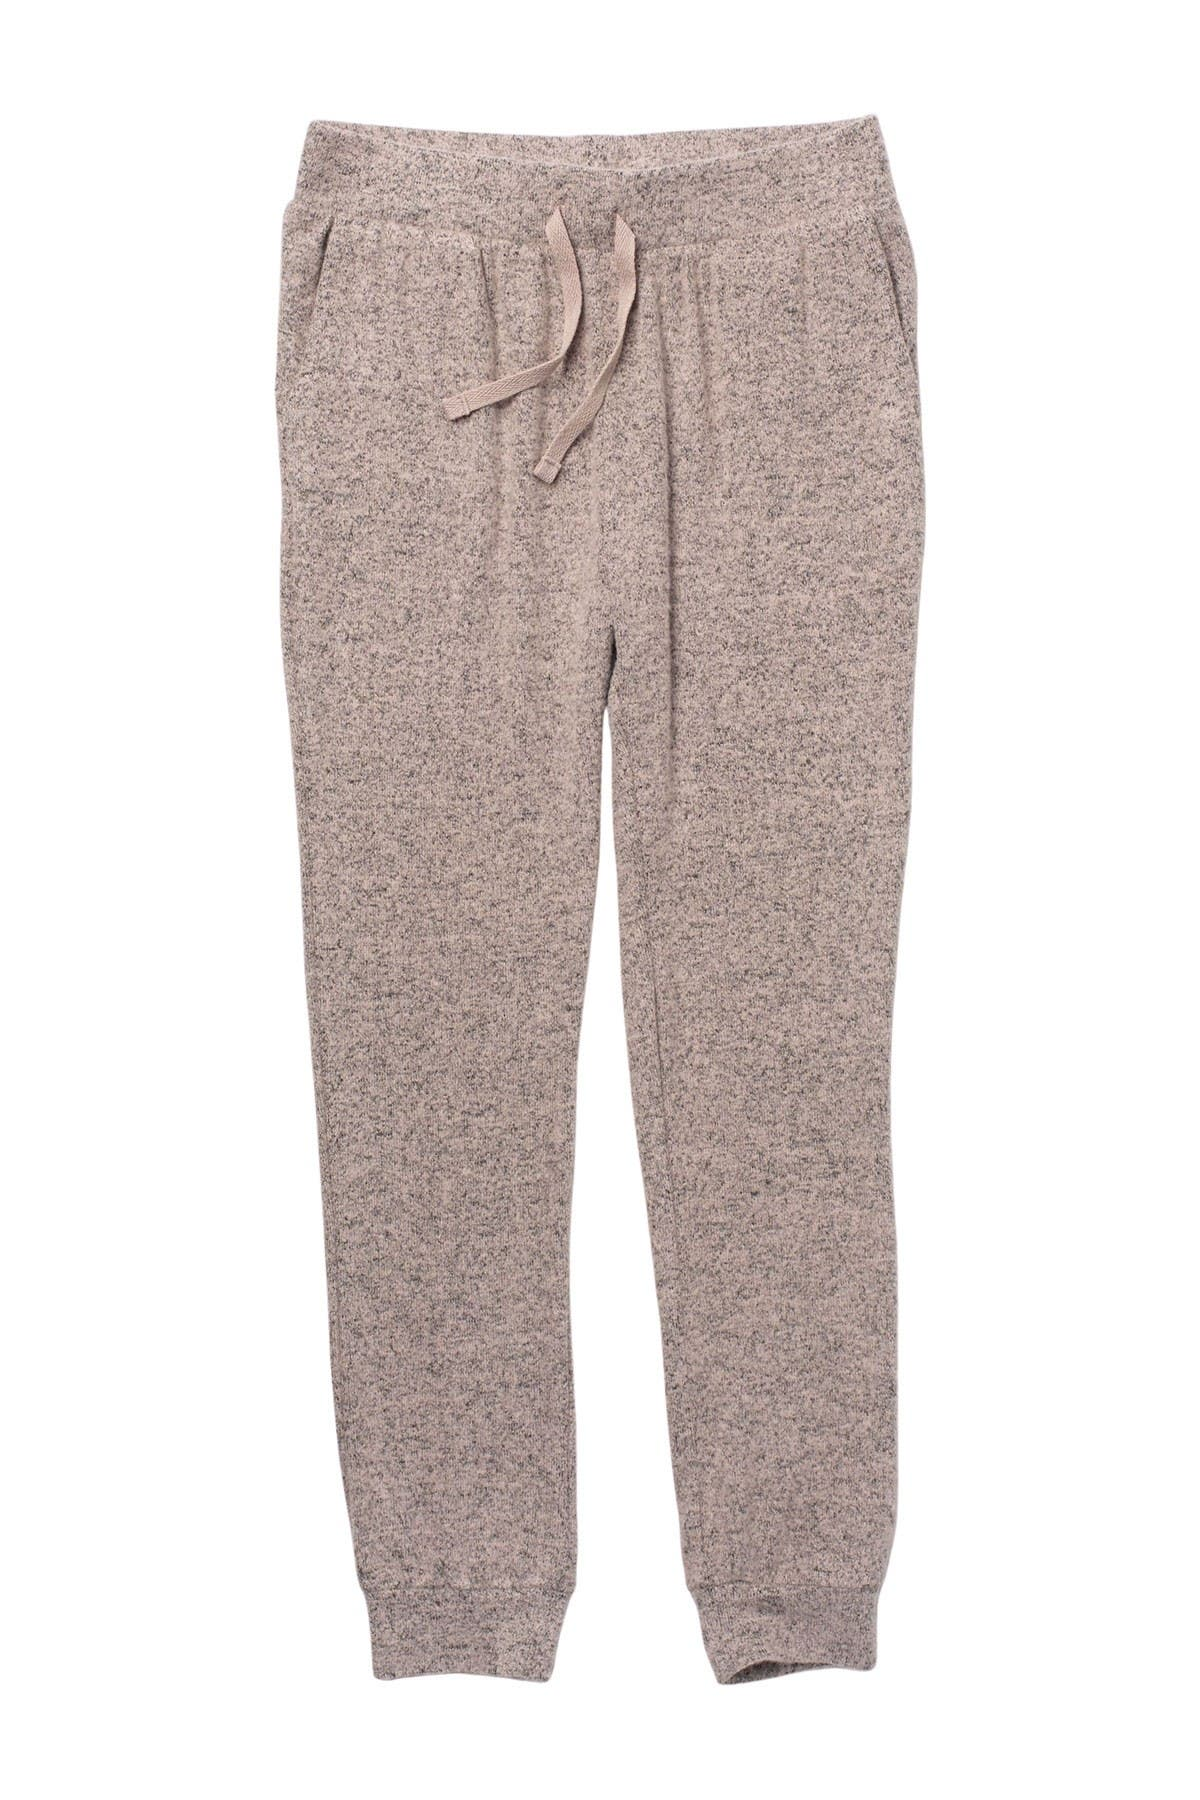 Image of Harper Canyon Cozy Jogger